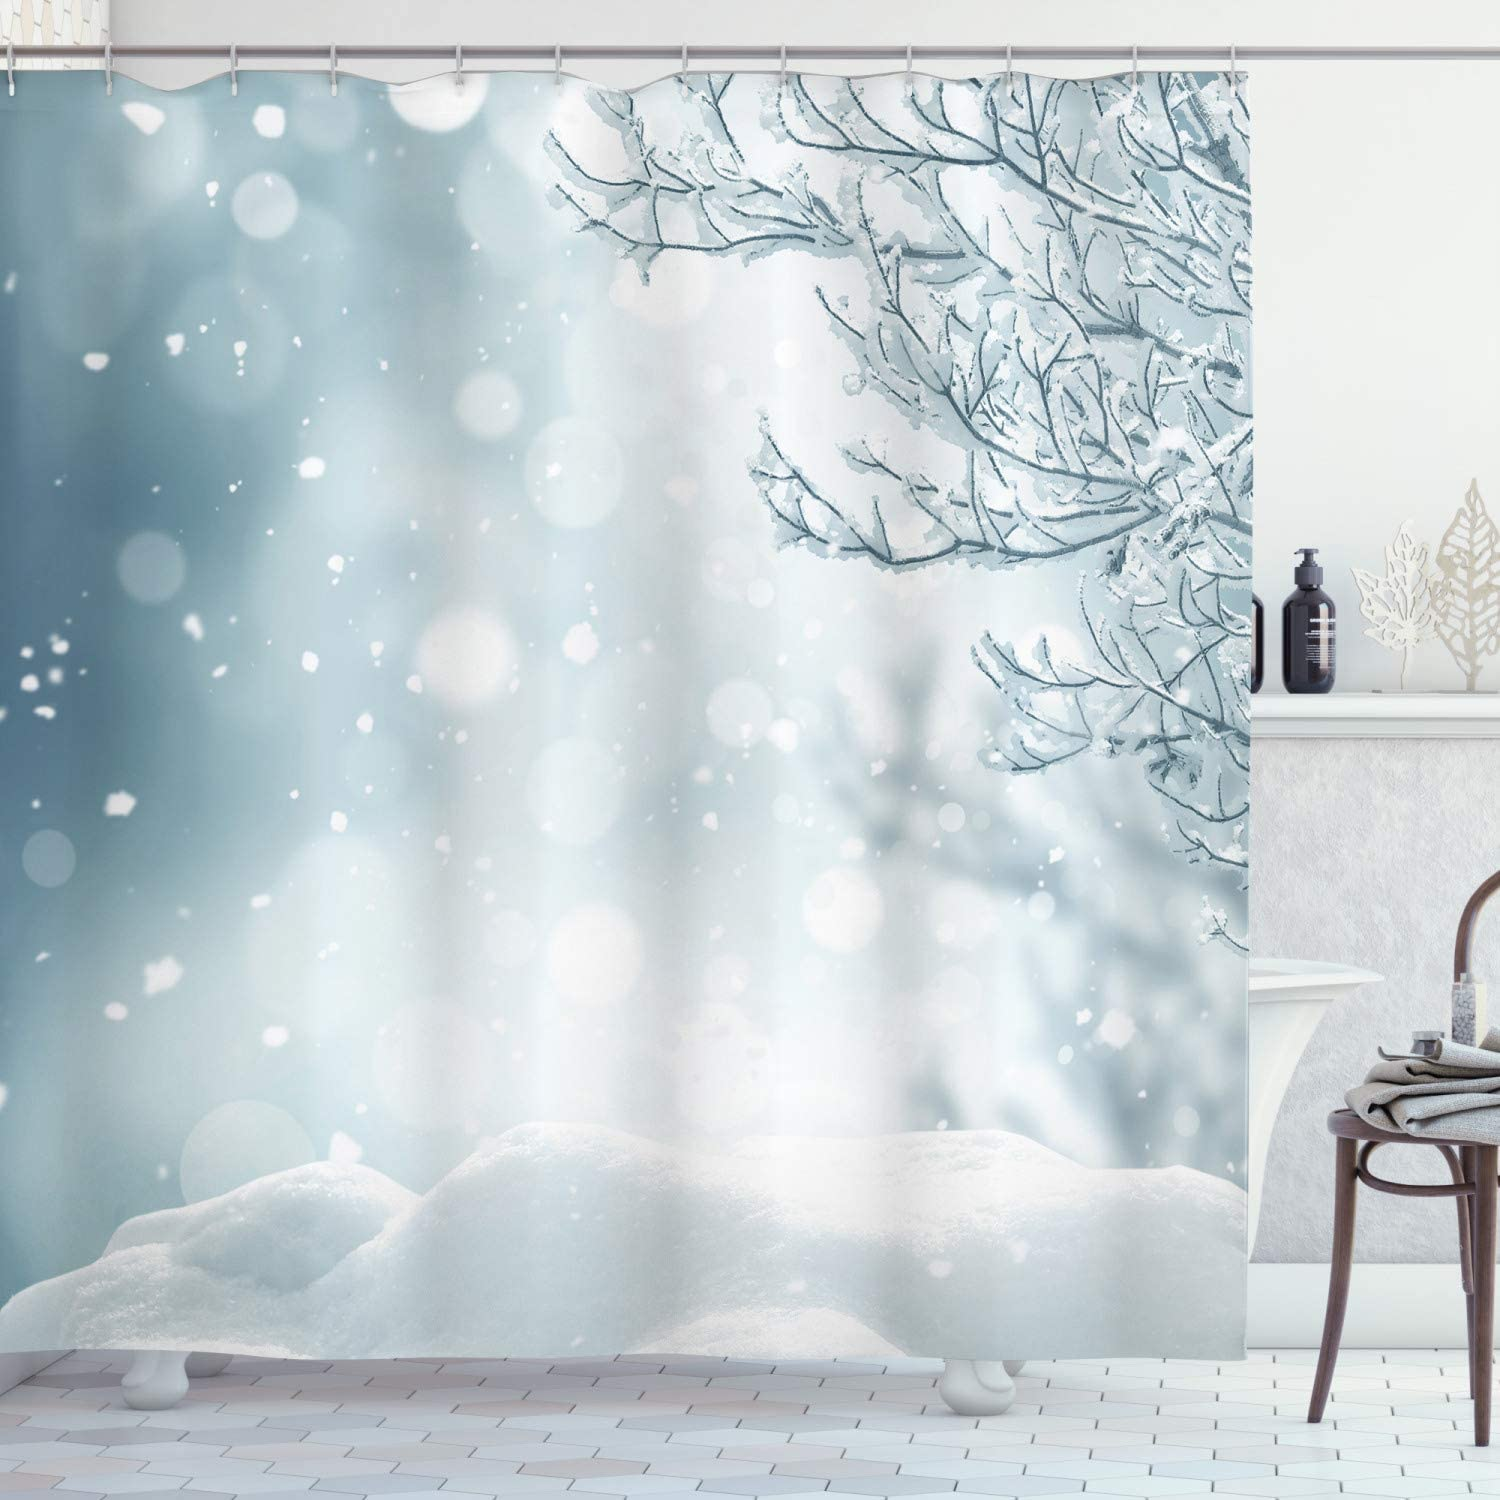 Ambesonne Winter Shower Curtain, Christmas Image Snow and Frosted Tree Snowflakes Winter Season Illustration, Cloth Fabric Bathroom Decor Set with Hooks, 70